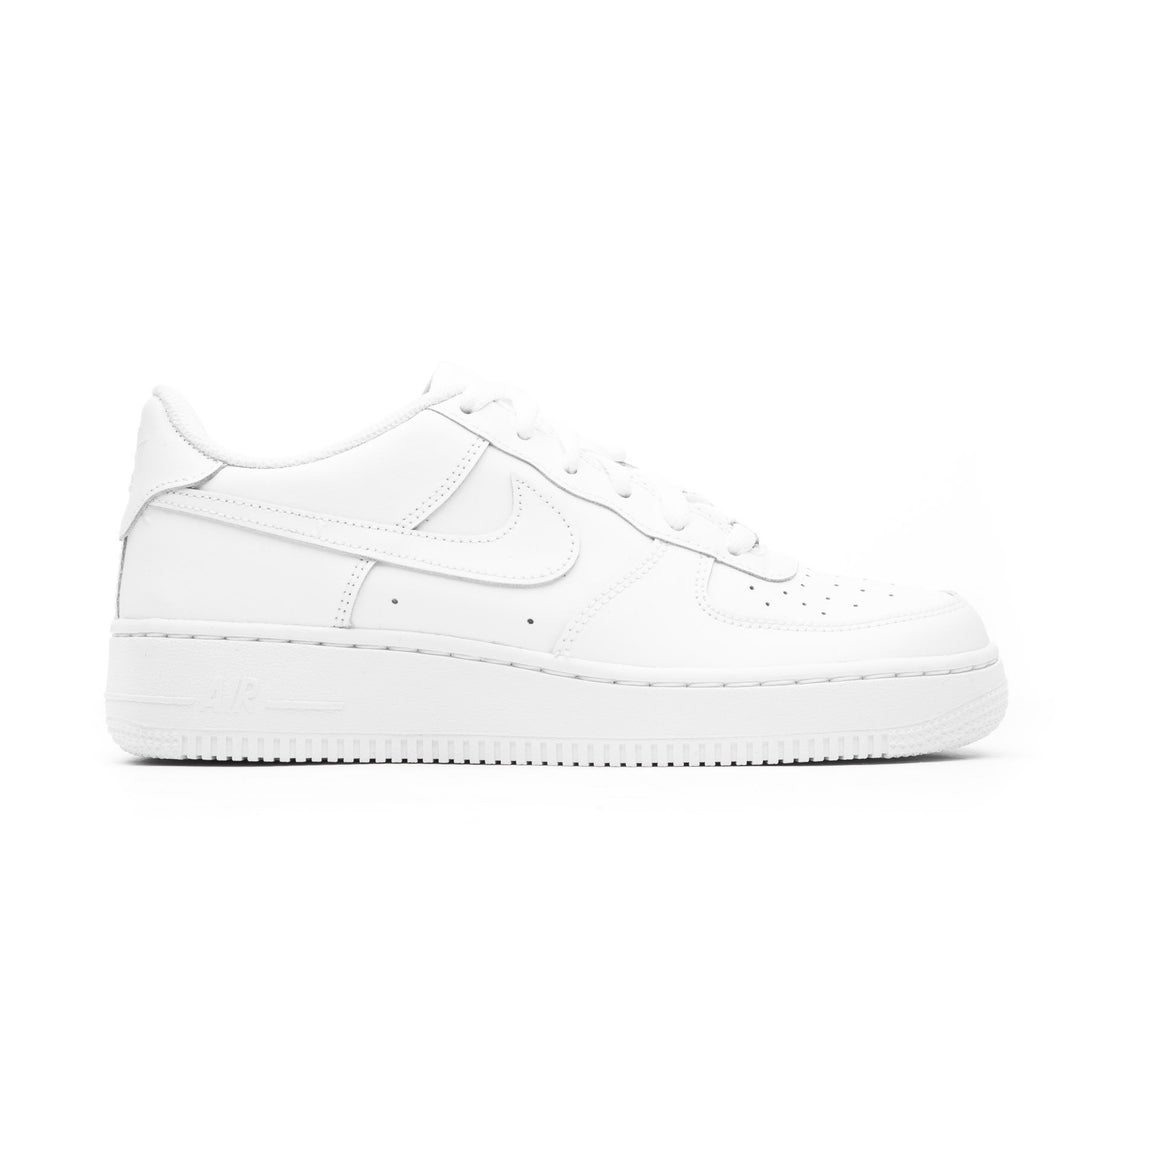 NIKE NIKE AIR FORCE 1 BG 314192117 - Meat Pack - guatemala